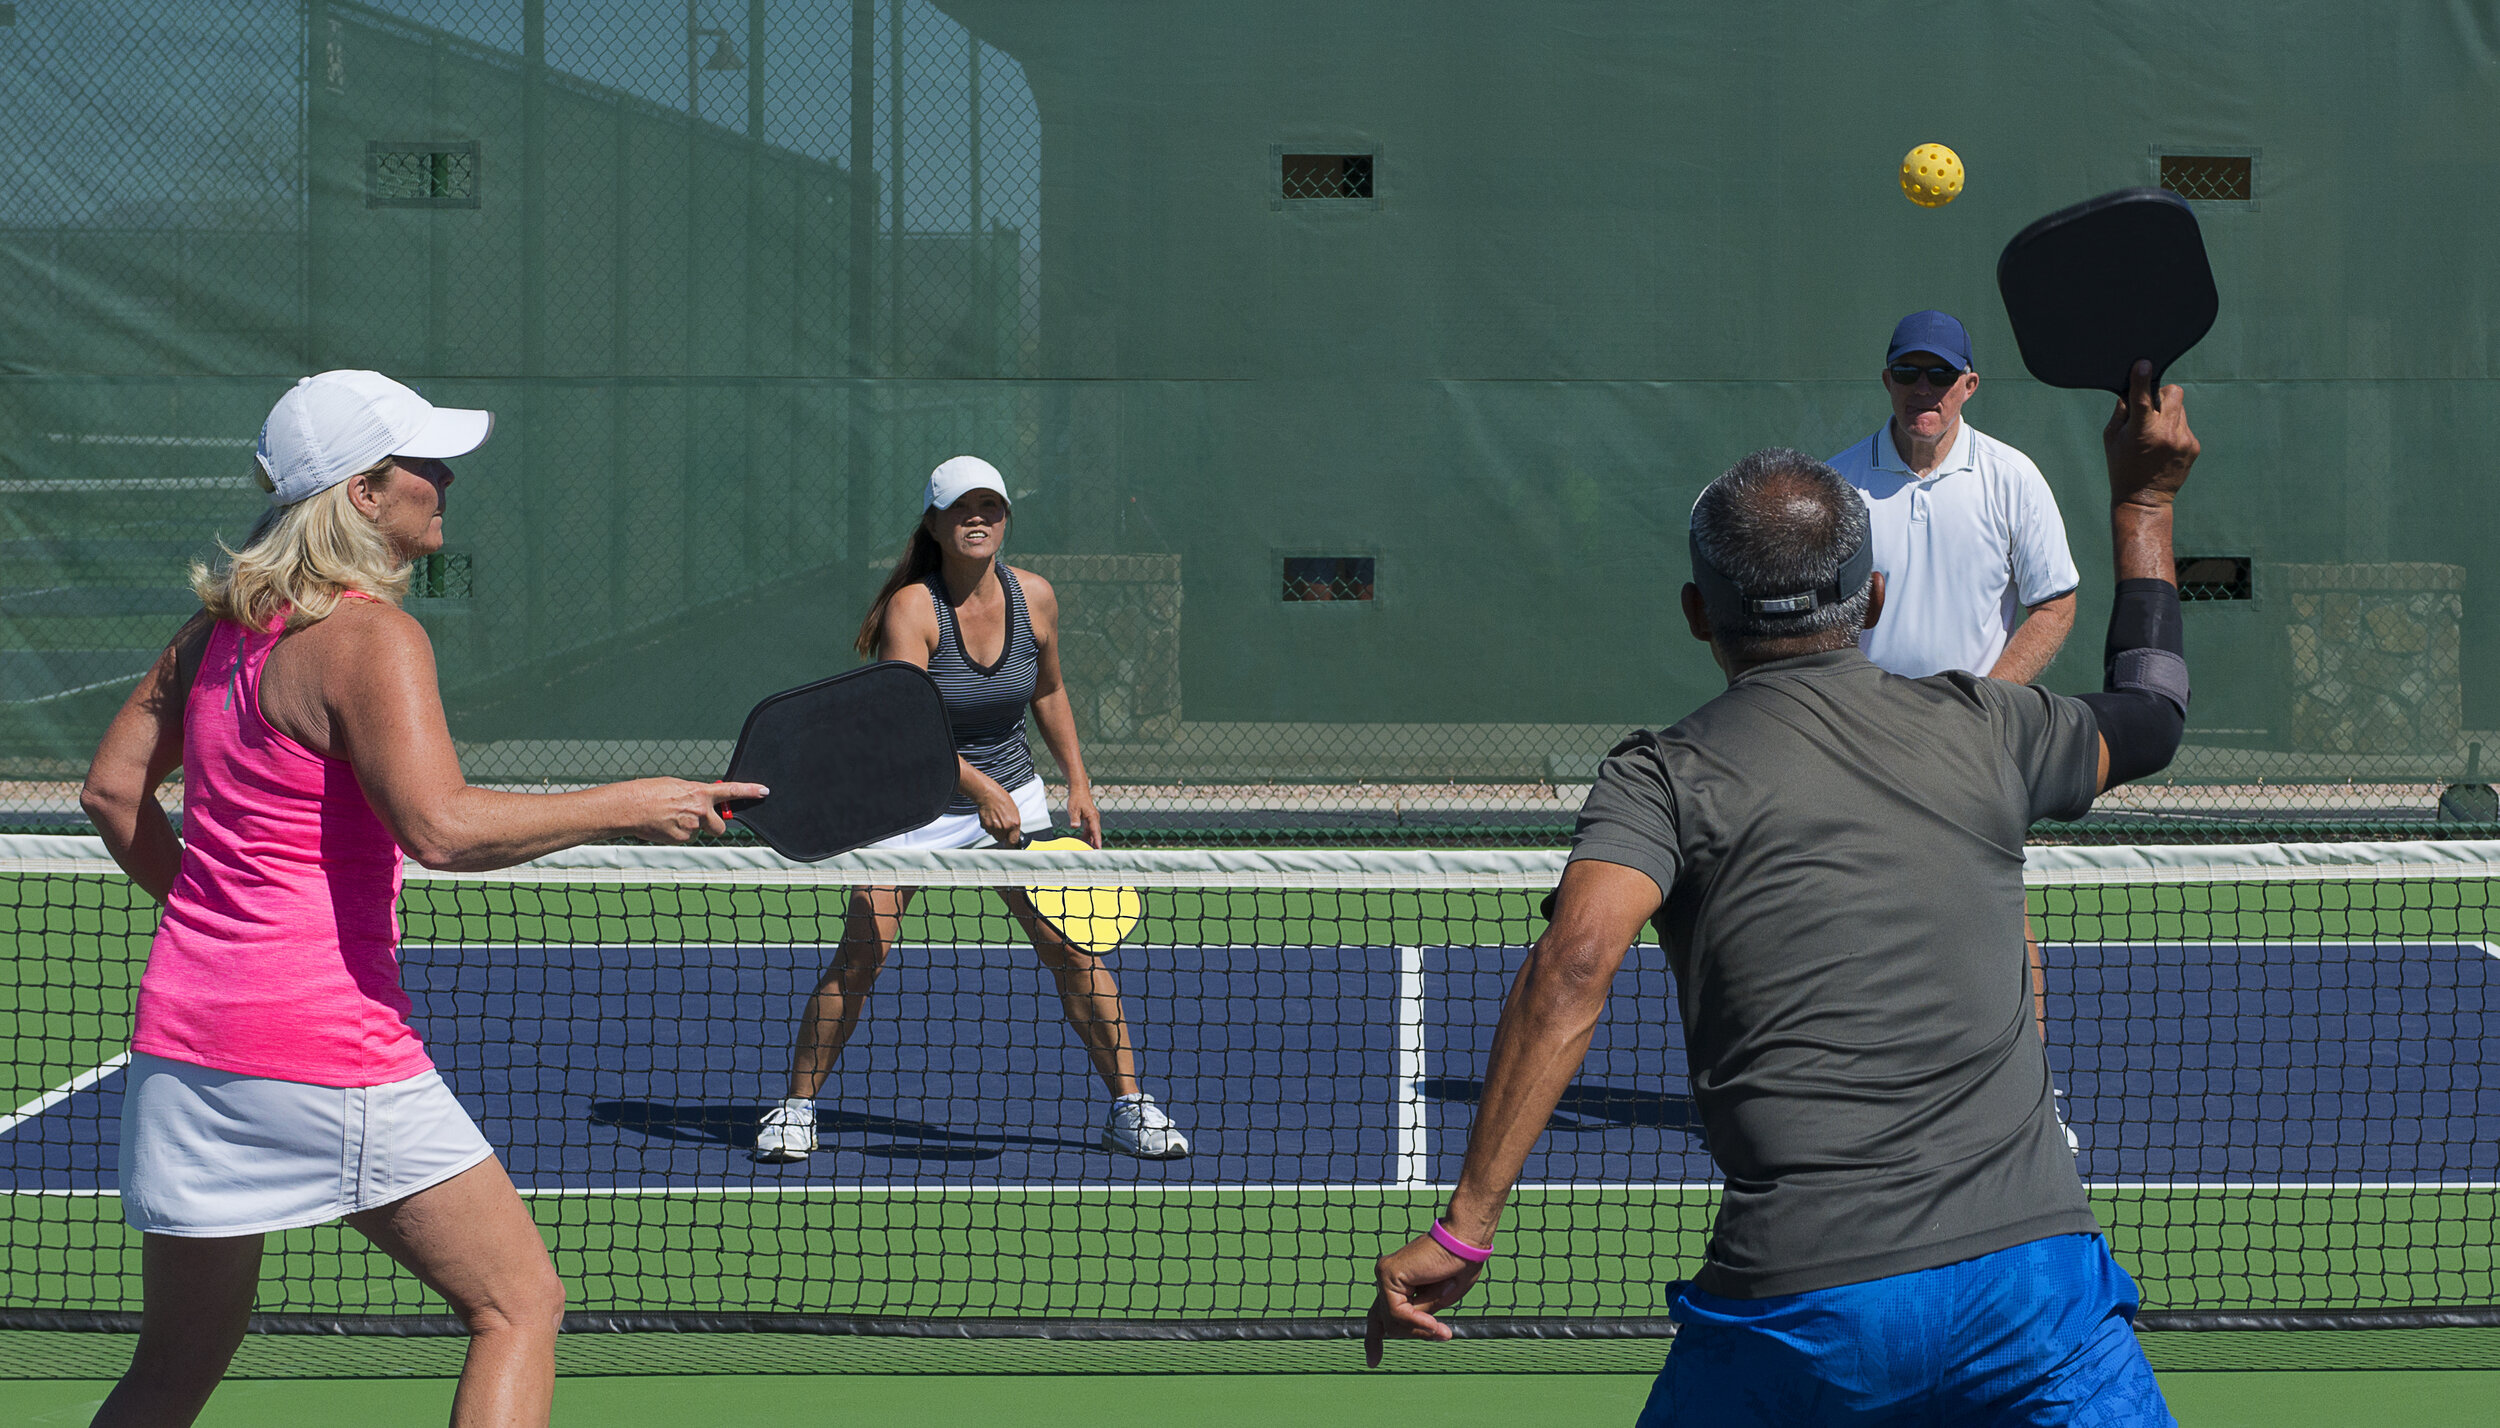 PICKLEBALL - The new trend, pickleball is a sport for every ability and we have courts available to you!